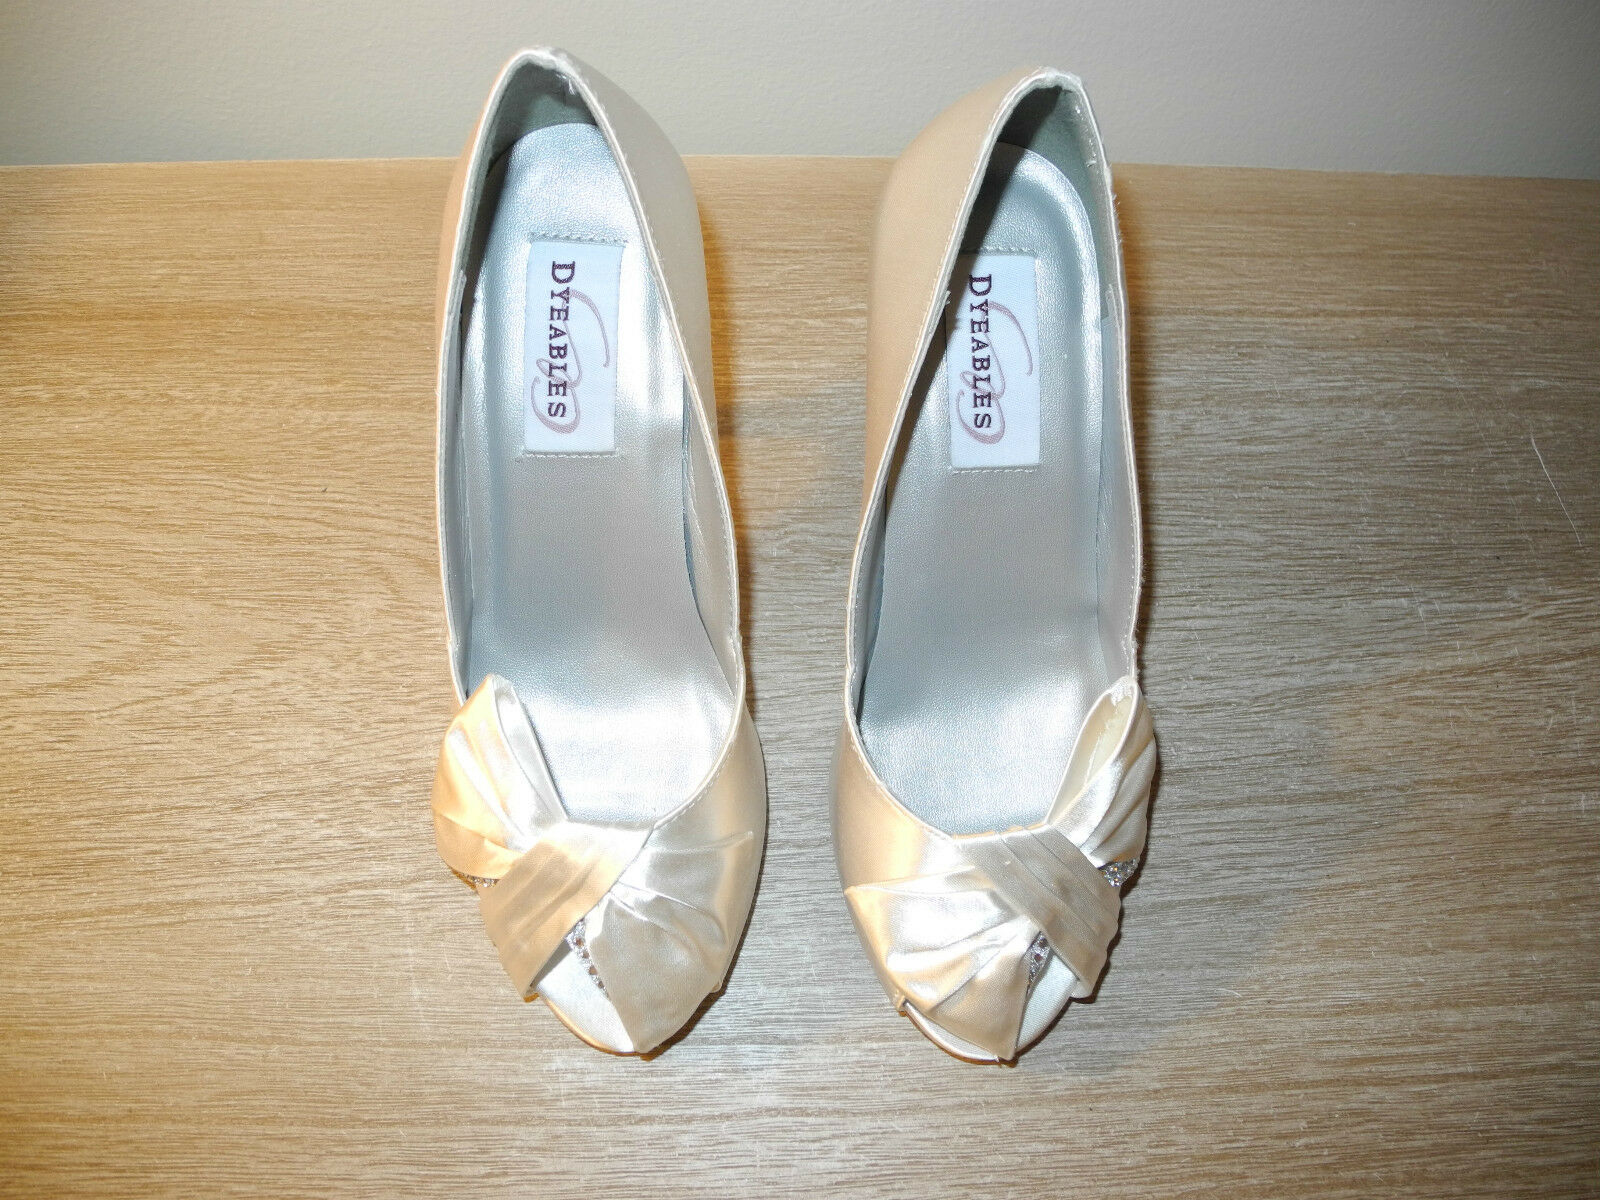 New Dyeables Liv WEISS Satin Dyed Open Toed Heels With Rhinestone Bow Bridal